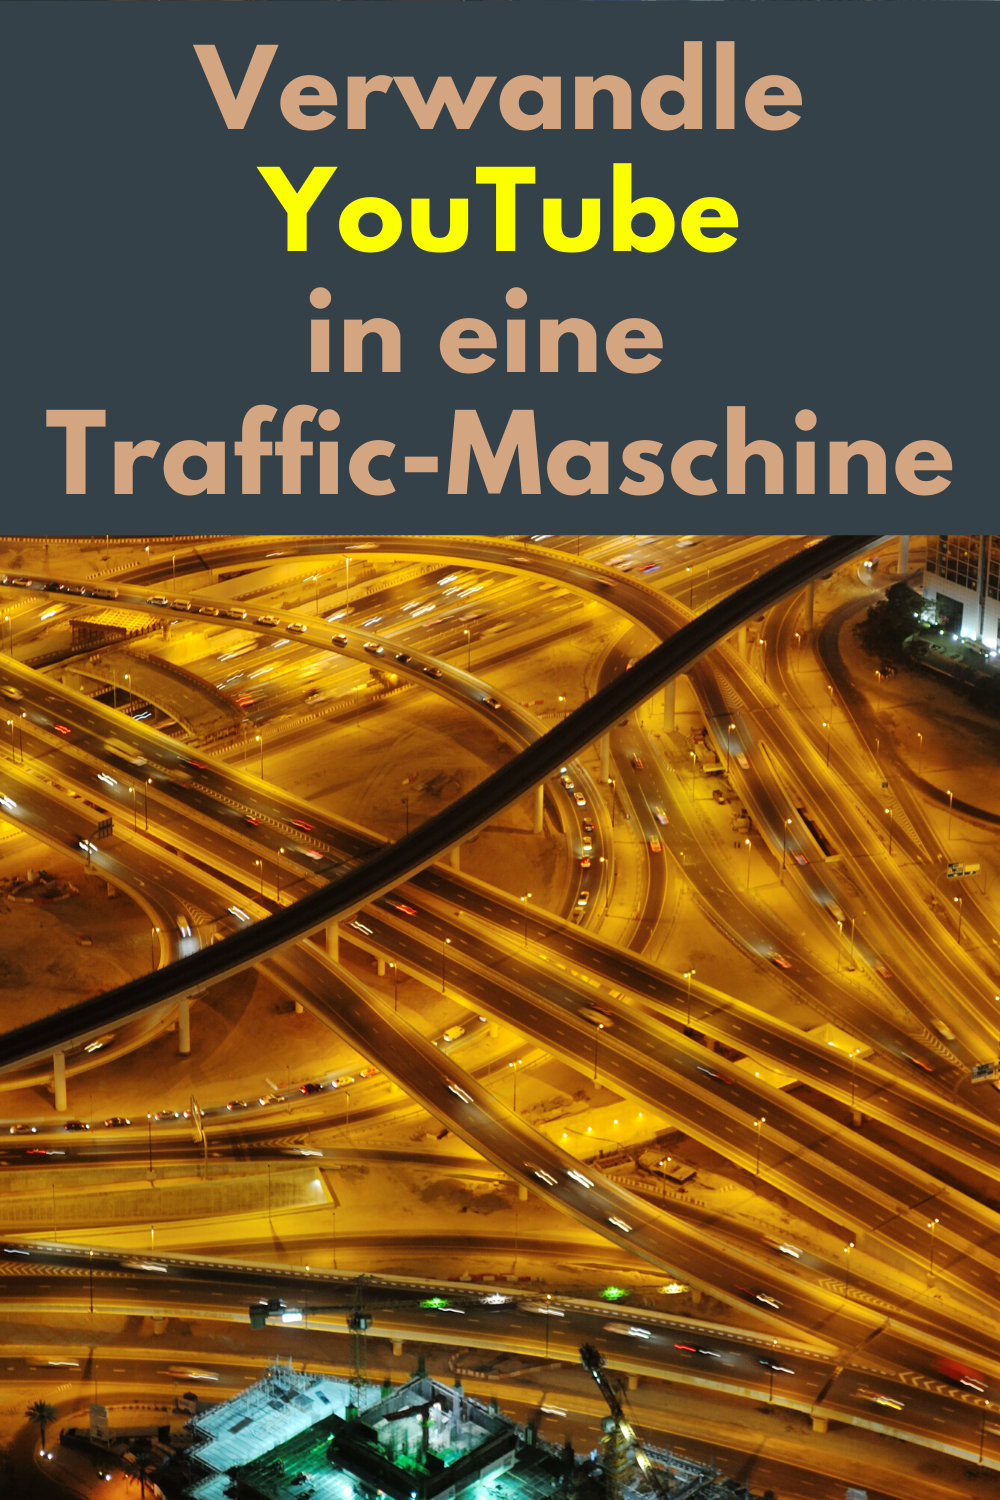 YouTube Traffic - Verwandle YouTube in eine Trafficmaschine